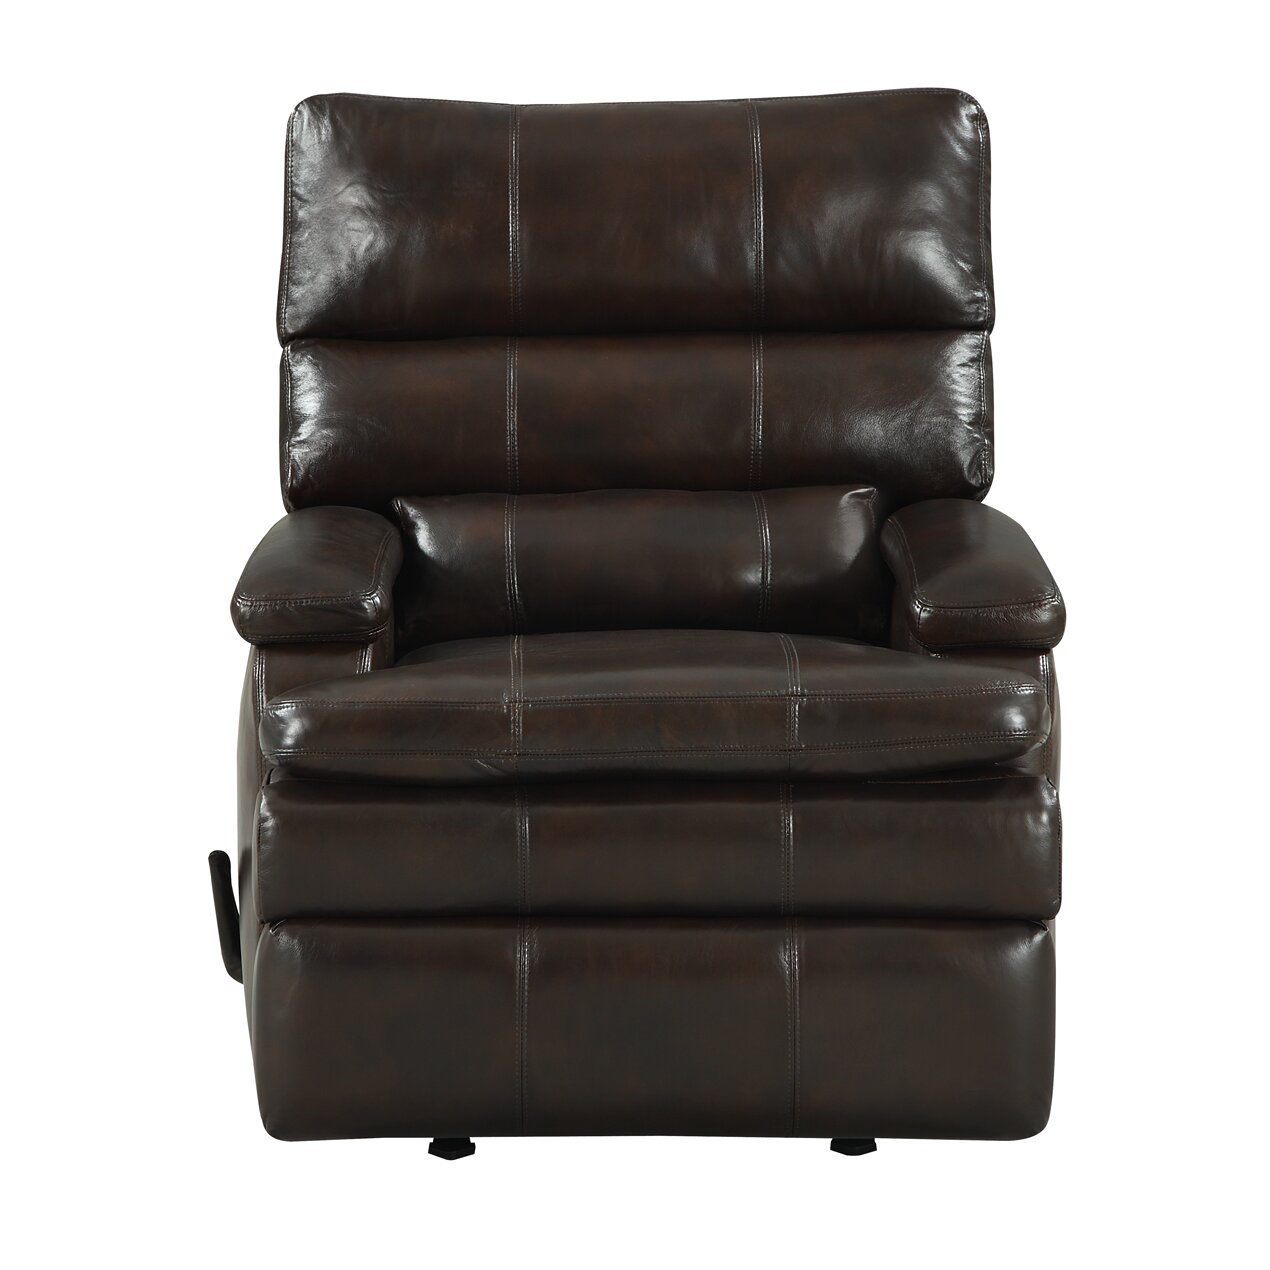 At Home Designs Belmont Leather Rocker Recliner Reviews